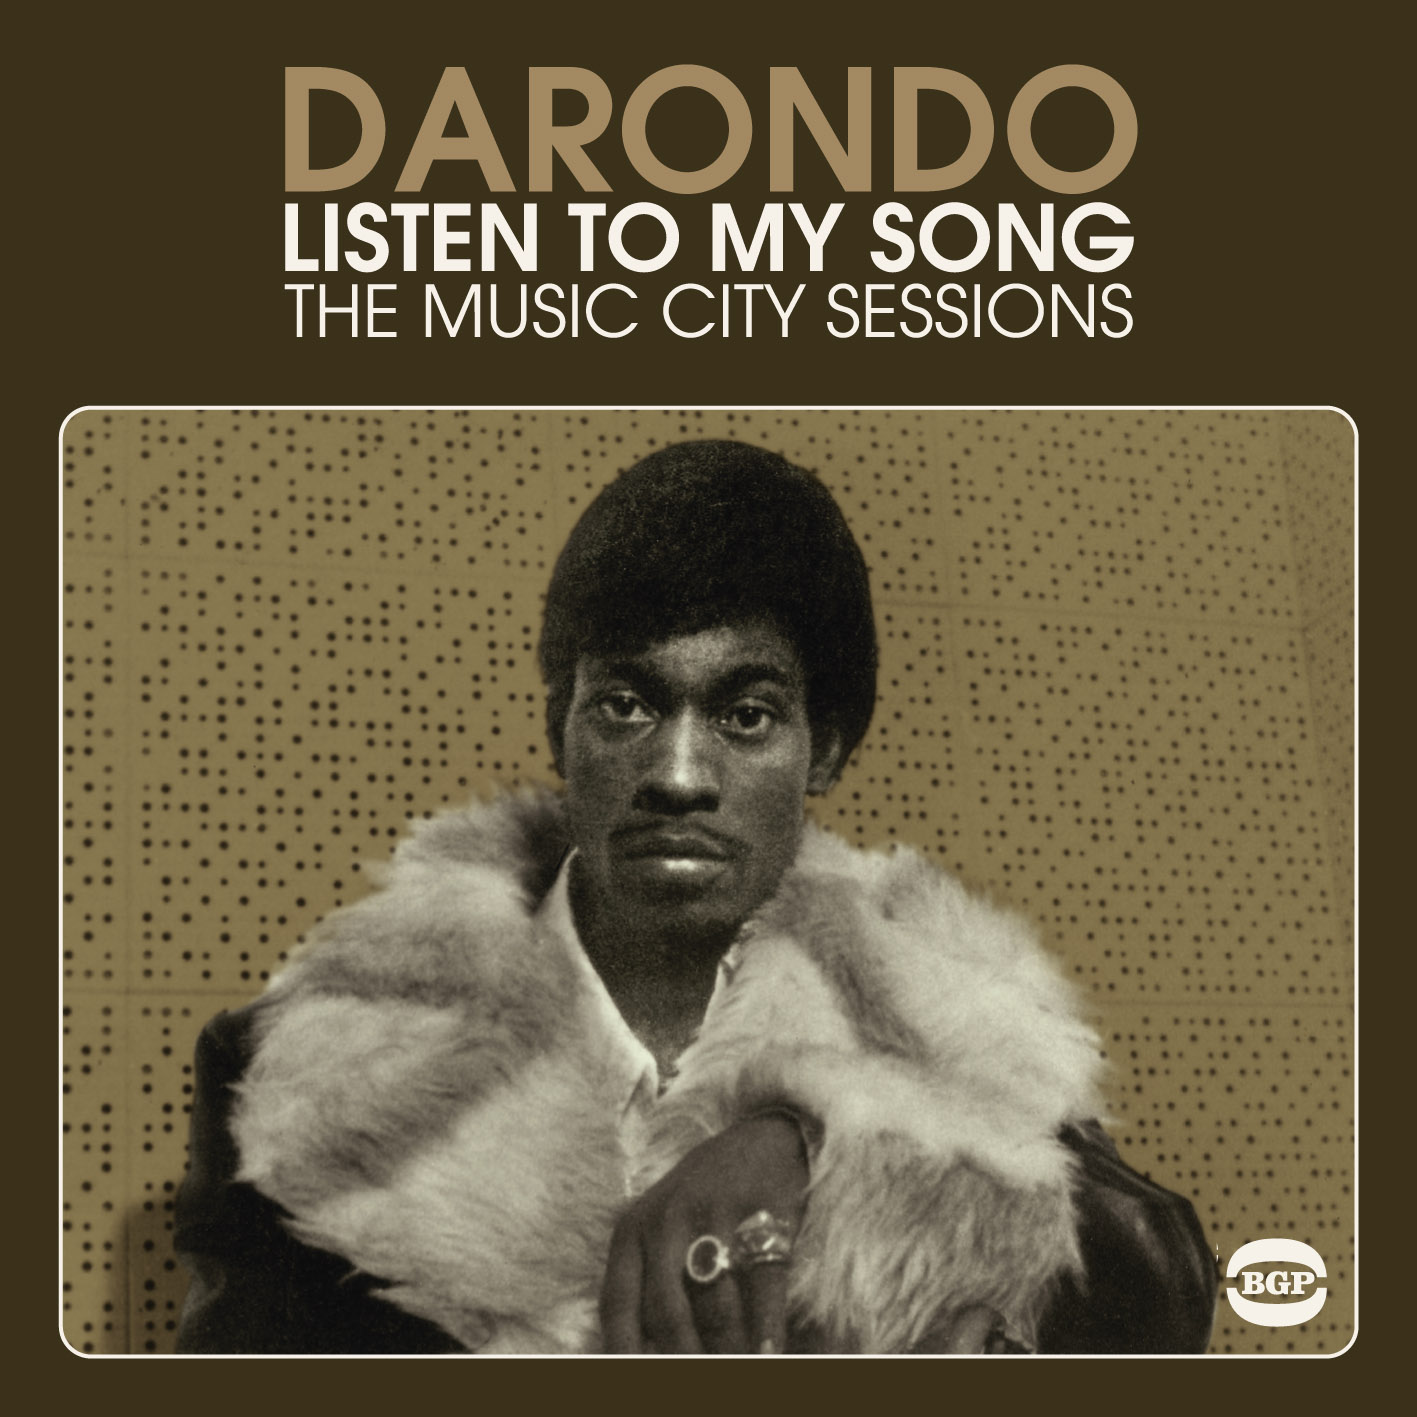 Darondo Listen to My Song: The Music City Sessions